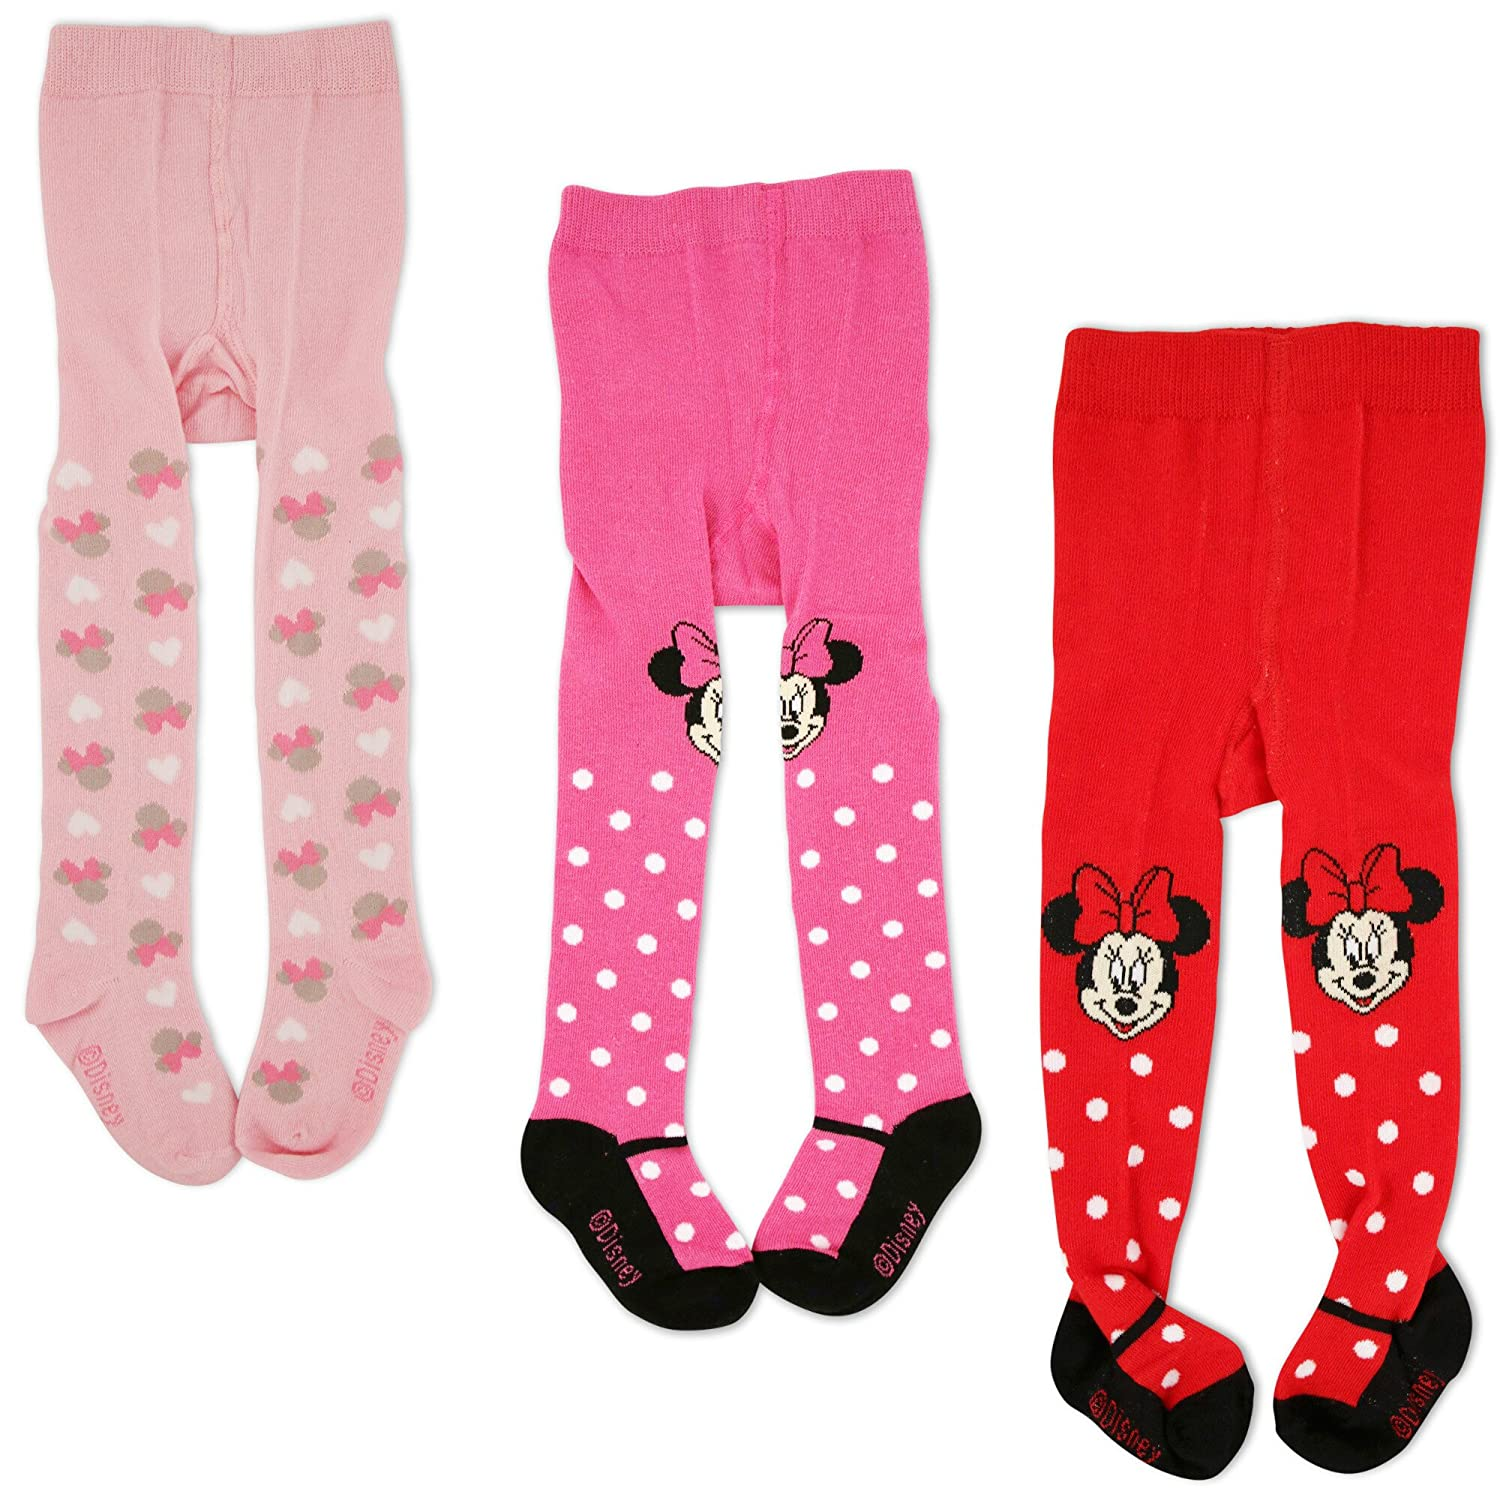 Disney Baby Girls Minnie Mouse Polka Dot Tights, Multi-Color Variety Pack 03BK1455AP